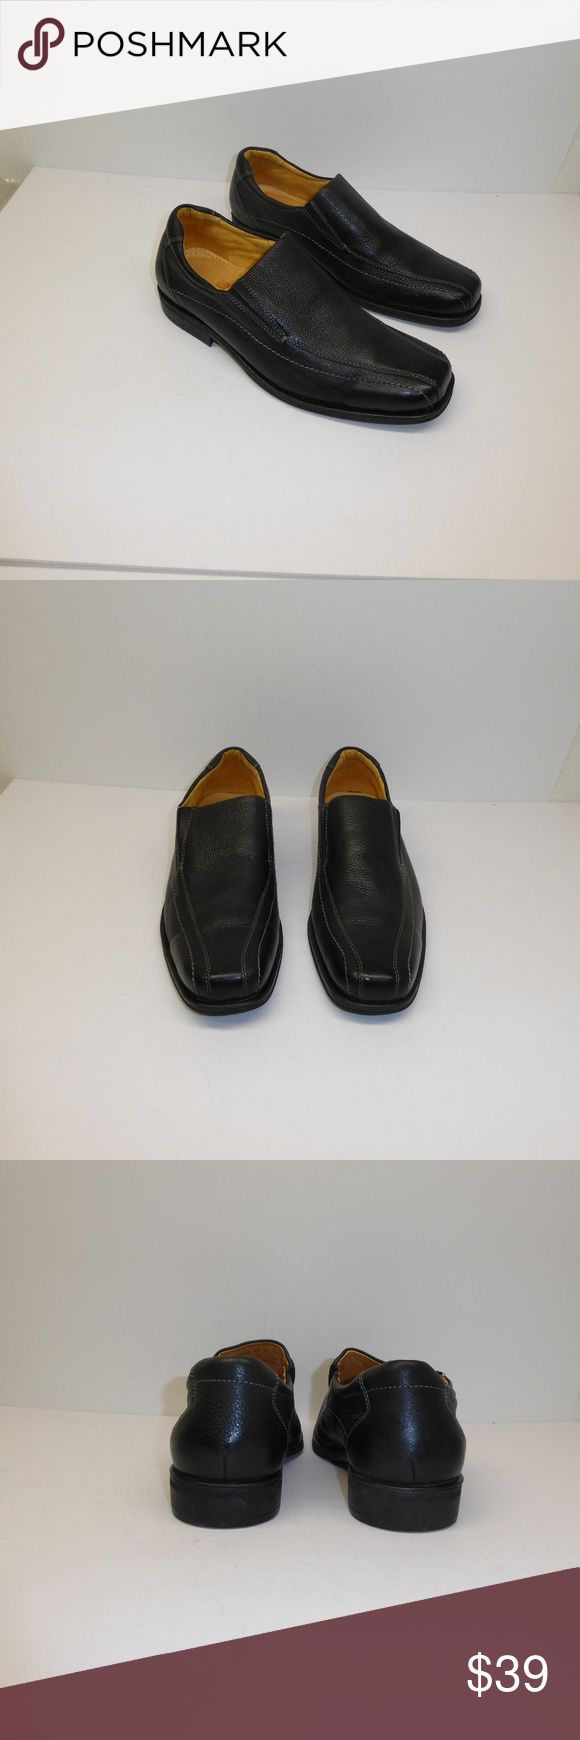 Sandro Moscoloni Black Loafers Size 11D #032 Black leather loafers by Sandro Moscolini.  Size 11D, style #62046.  These are pre-owned shoes in fantastic, nearly new condition. Sandro Moscoloni Shoes Loafers & Slip-Ons